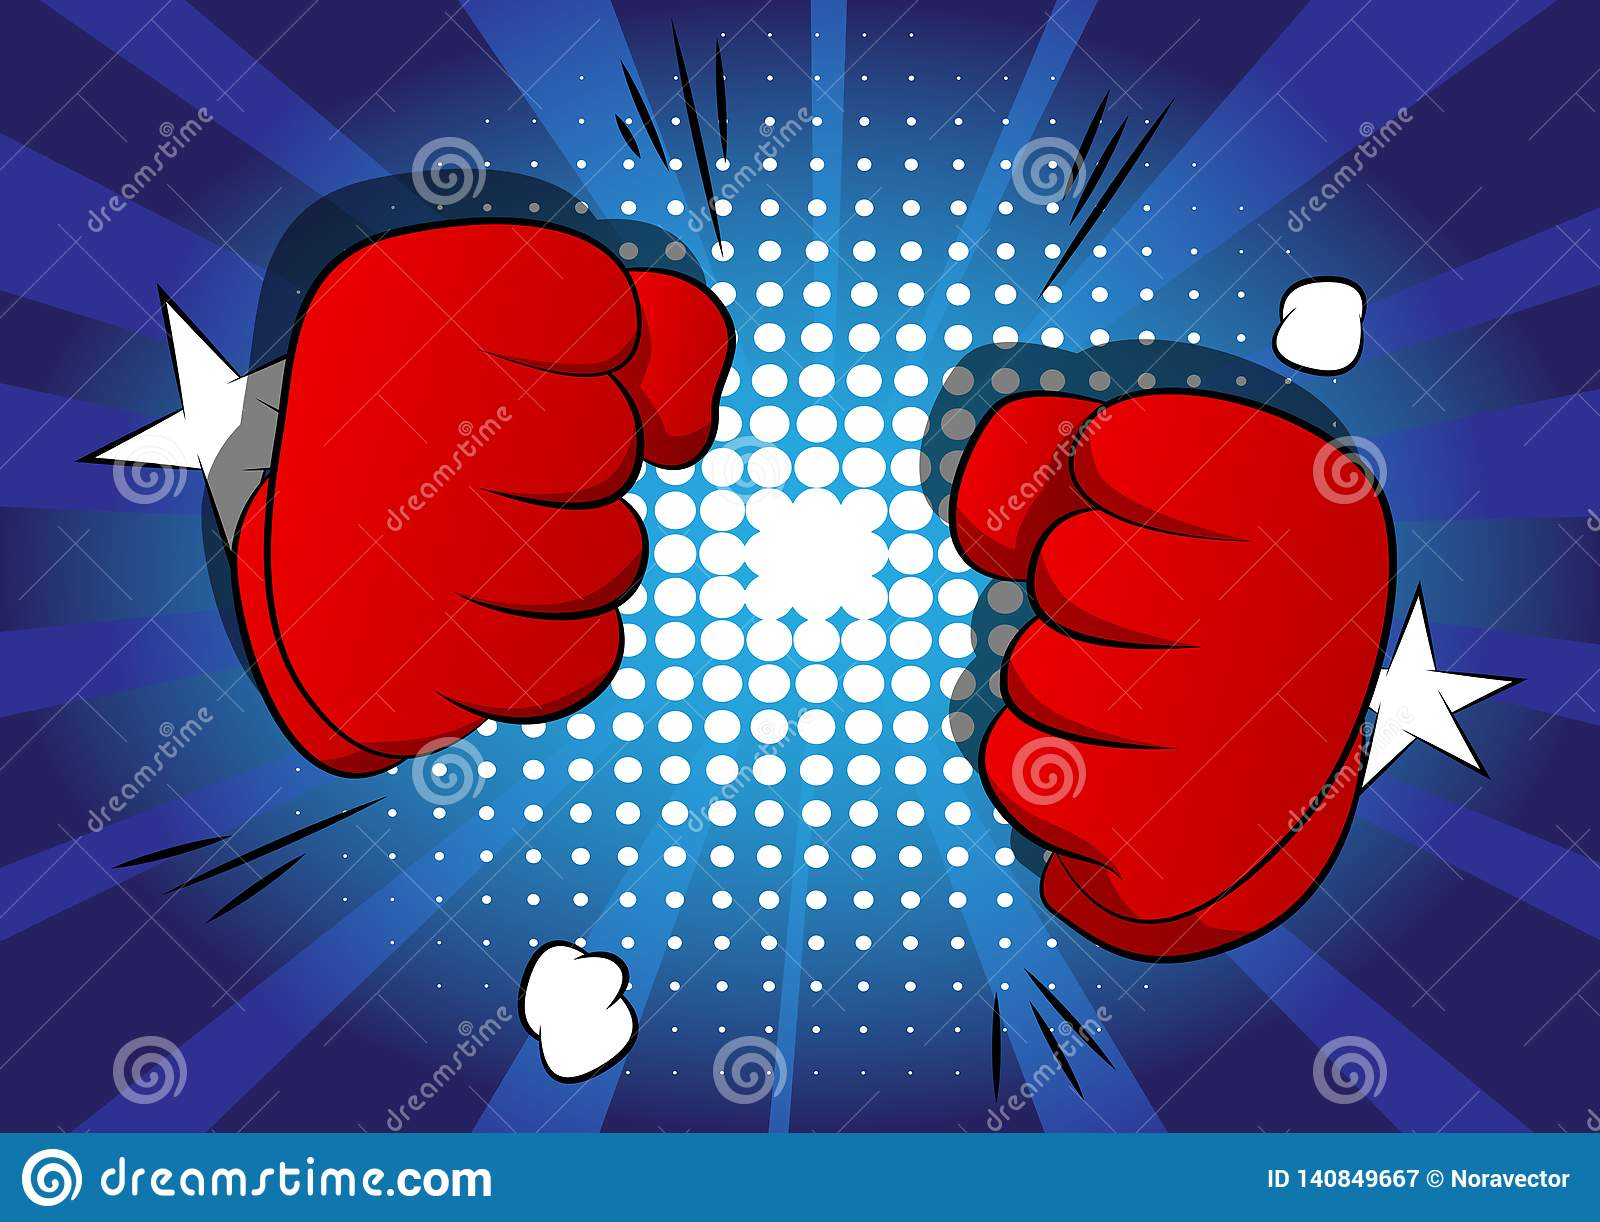 Cartoon Hands Ready To Fight On Comic Book Background Stock Vector Illustration Of Draw Fighter 140849667